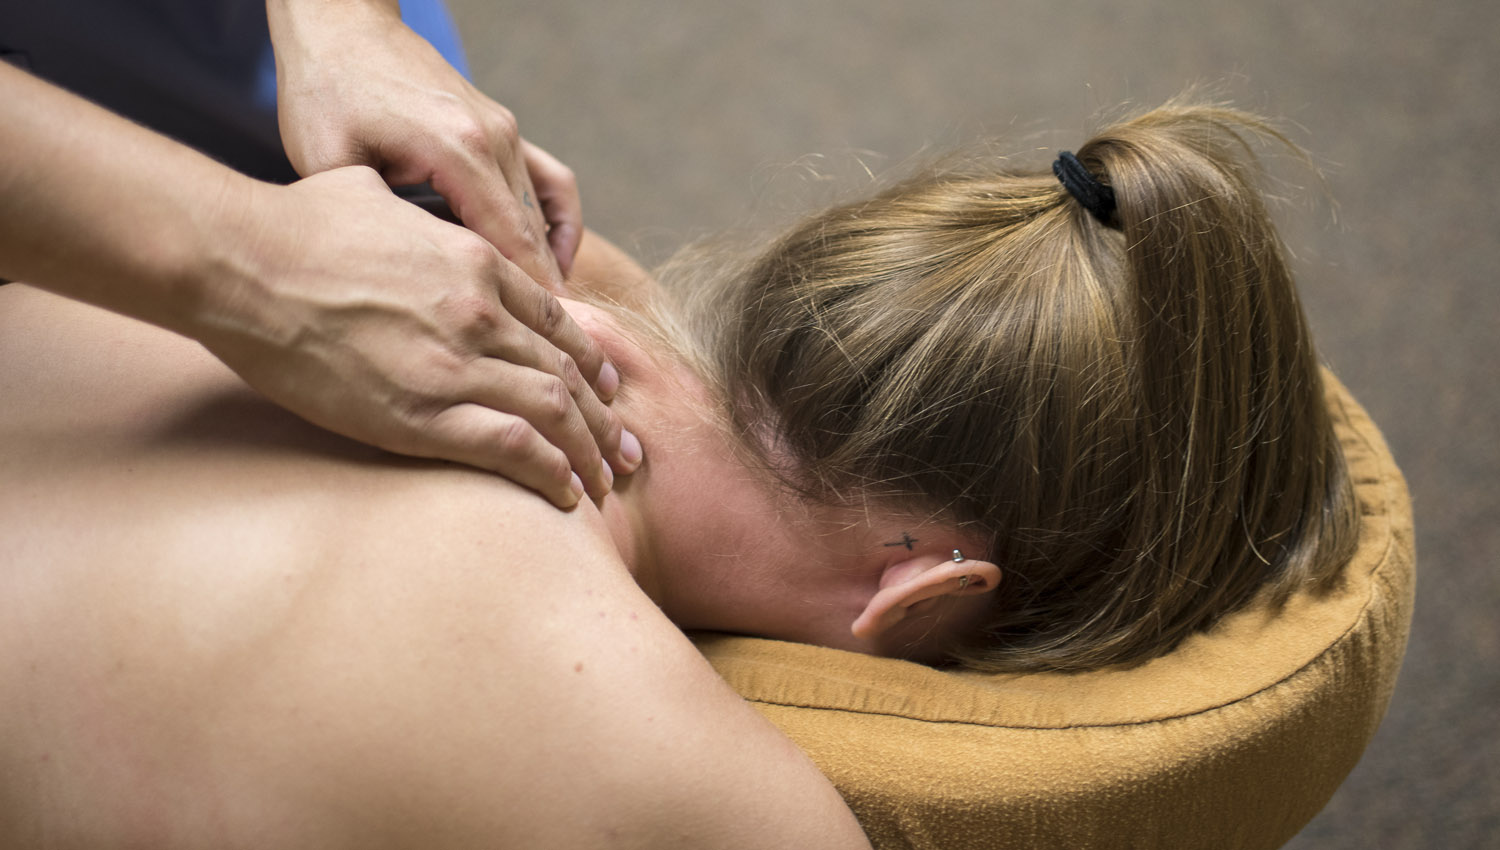 The treatments include many different massages. Image:     Ryan Hoyme